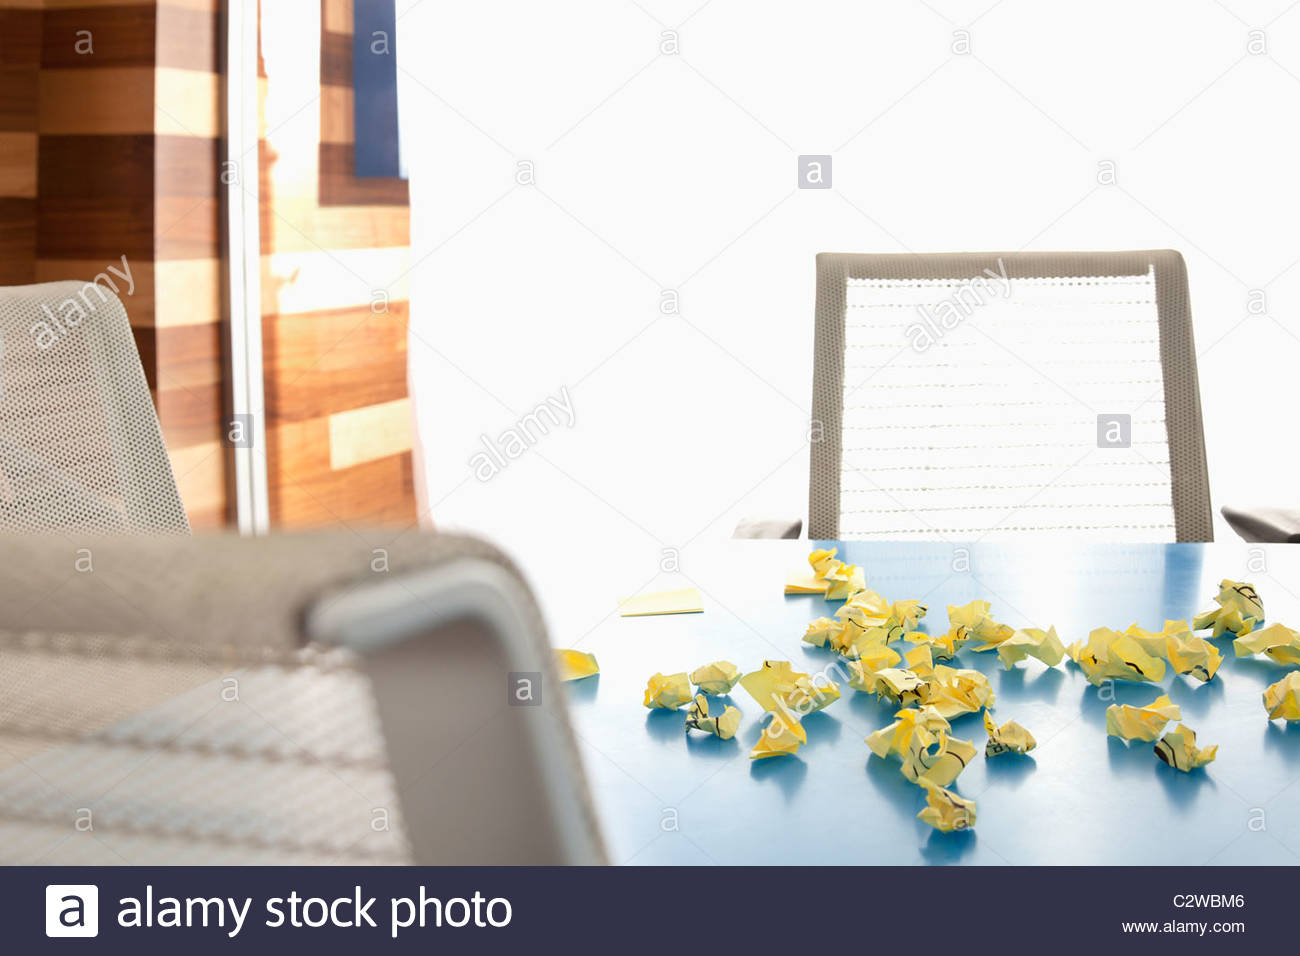 Crumpled adhesive notes on conference room table - Stock Image